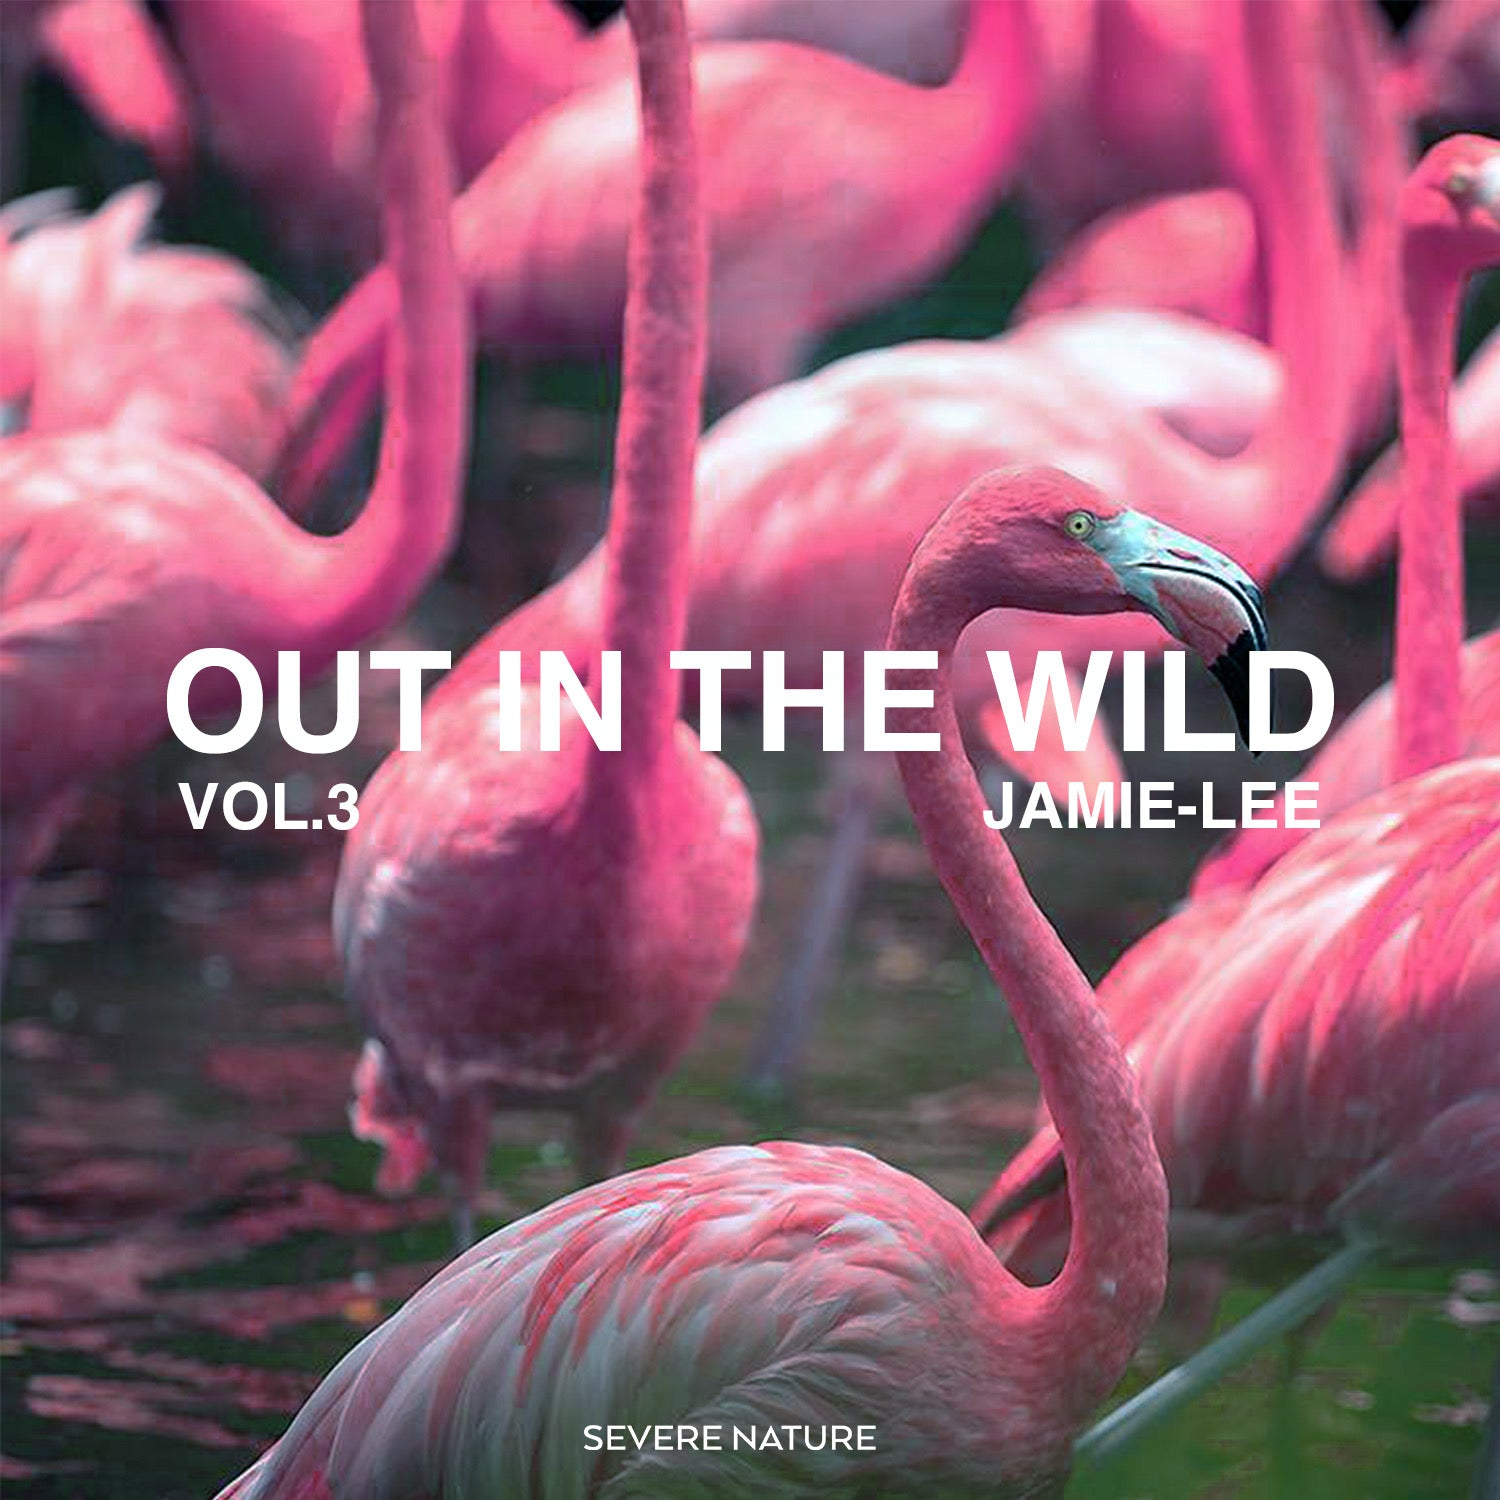 Out In The Wild Vol. 3 Cuated by Jamie-Lee